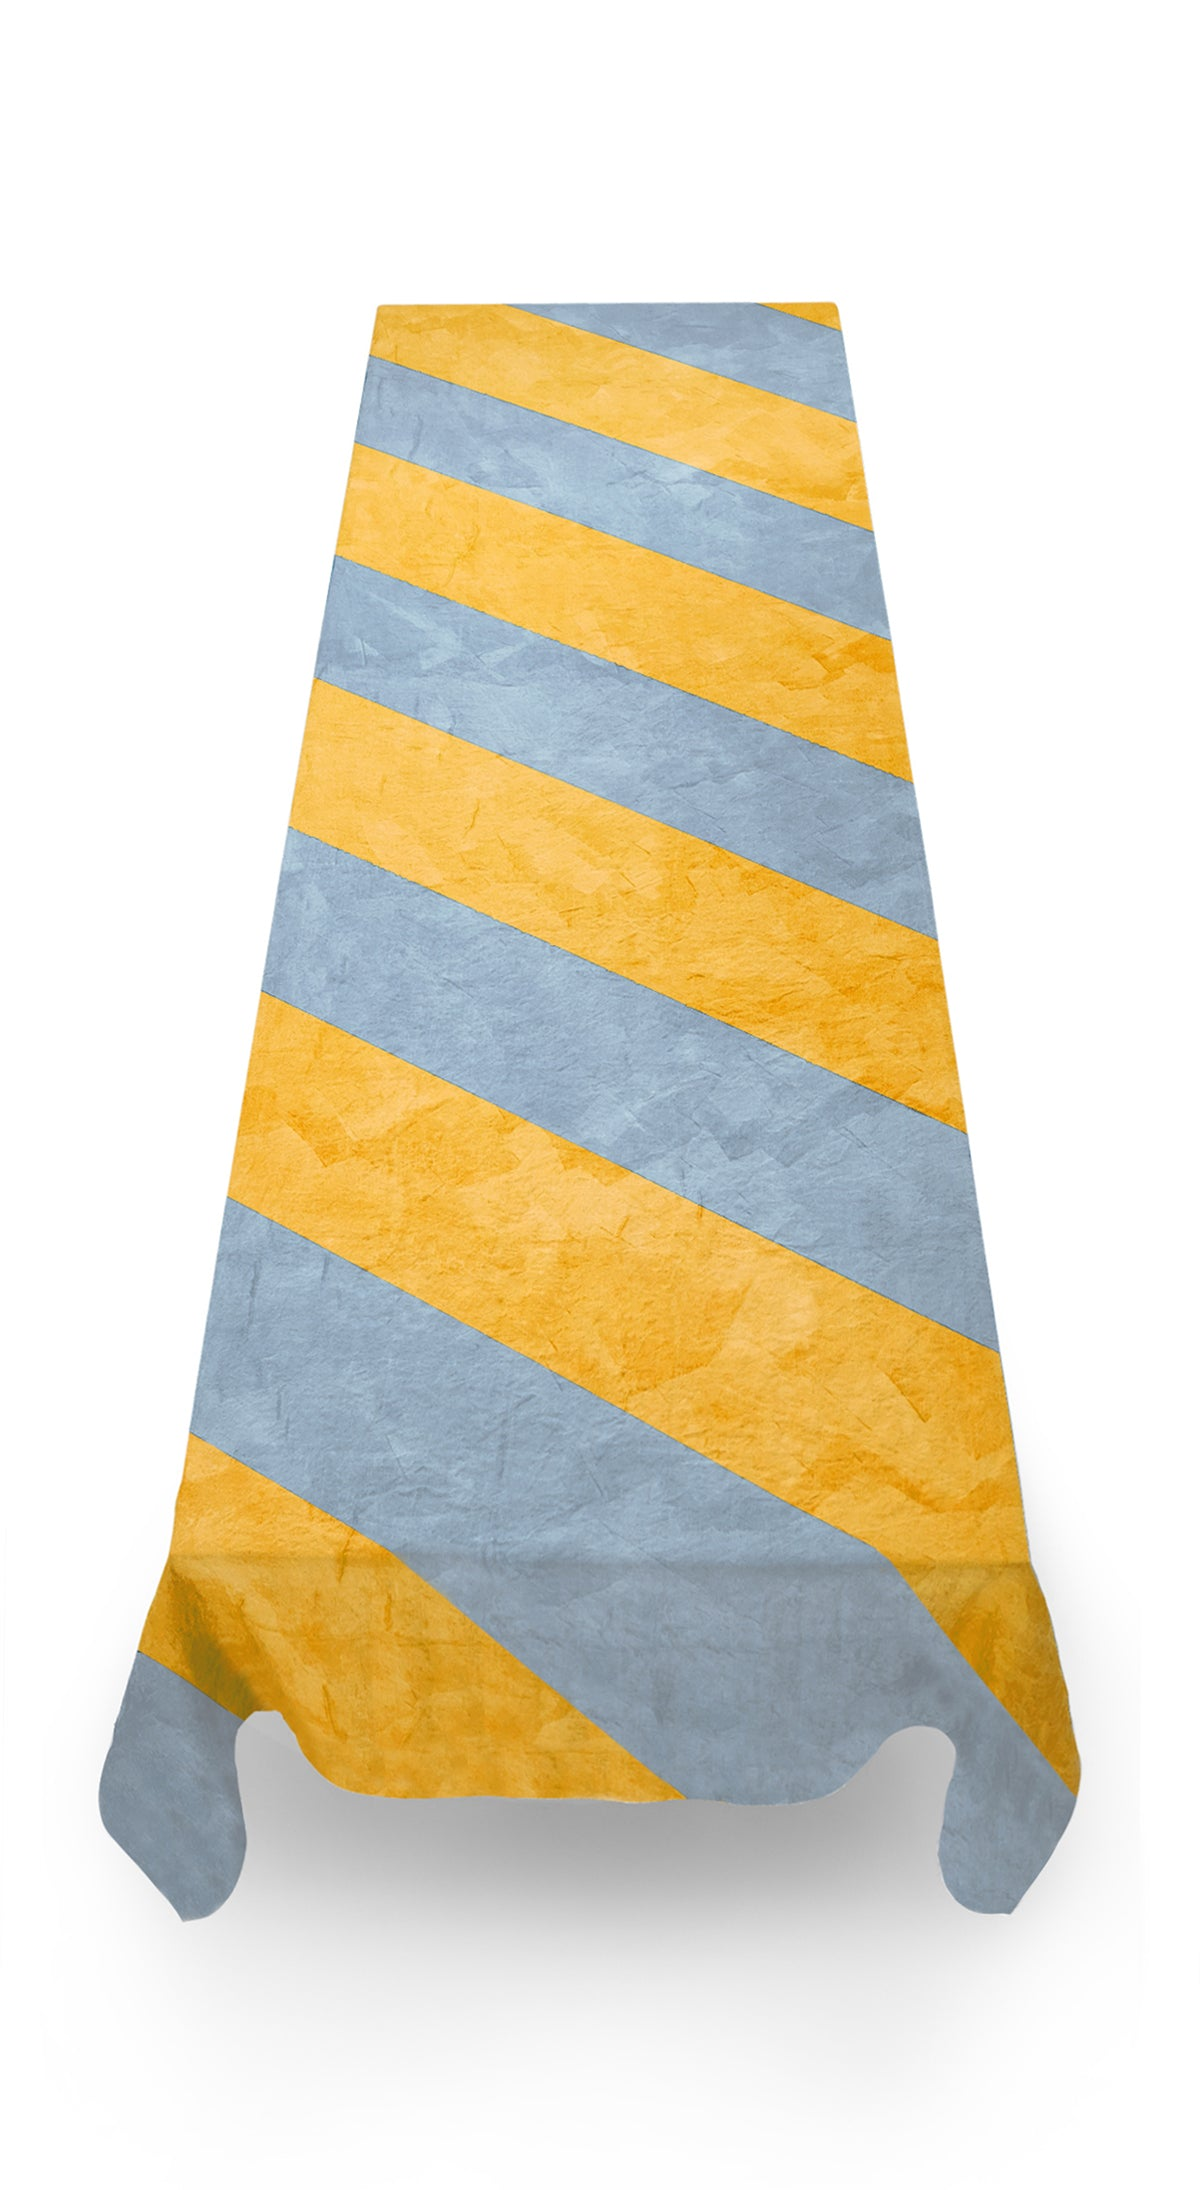 Stripe Linen Tablecloth in Mustard Yellow and Pale Blue